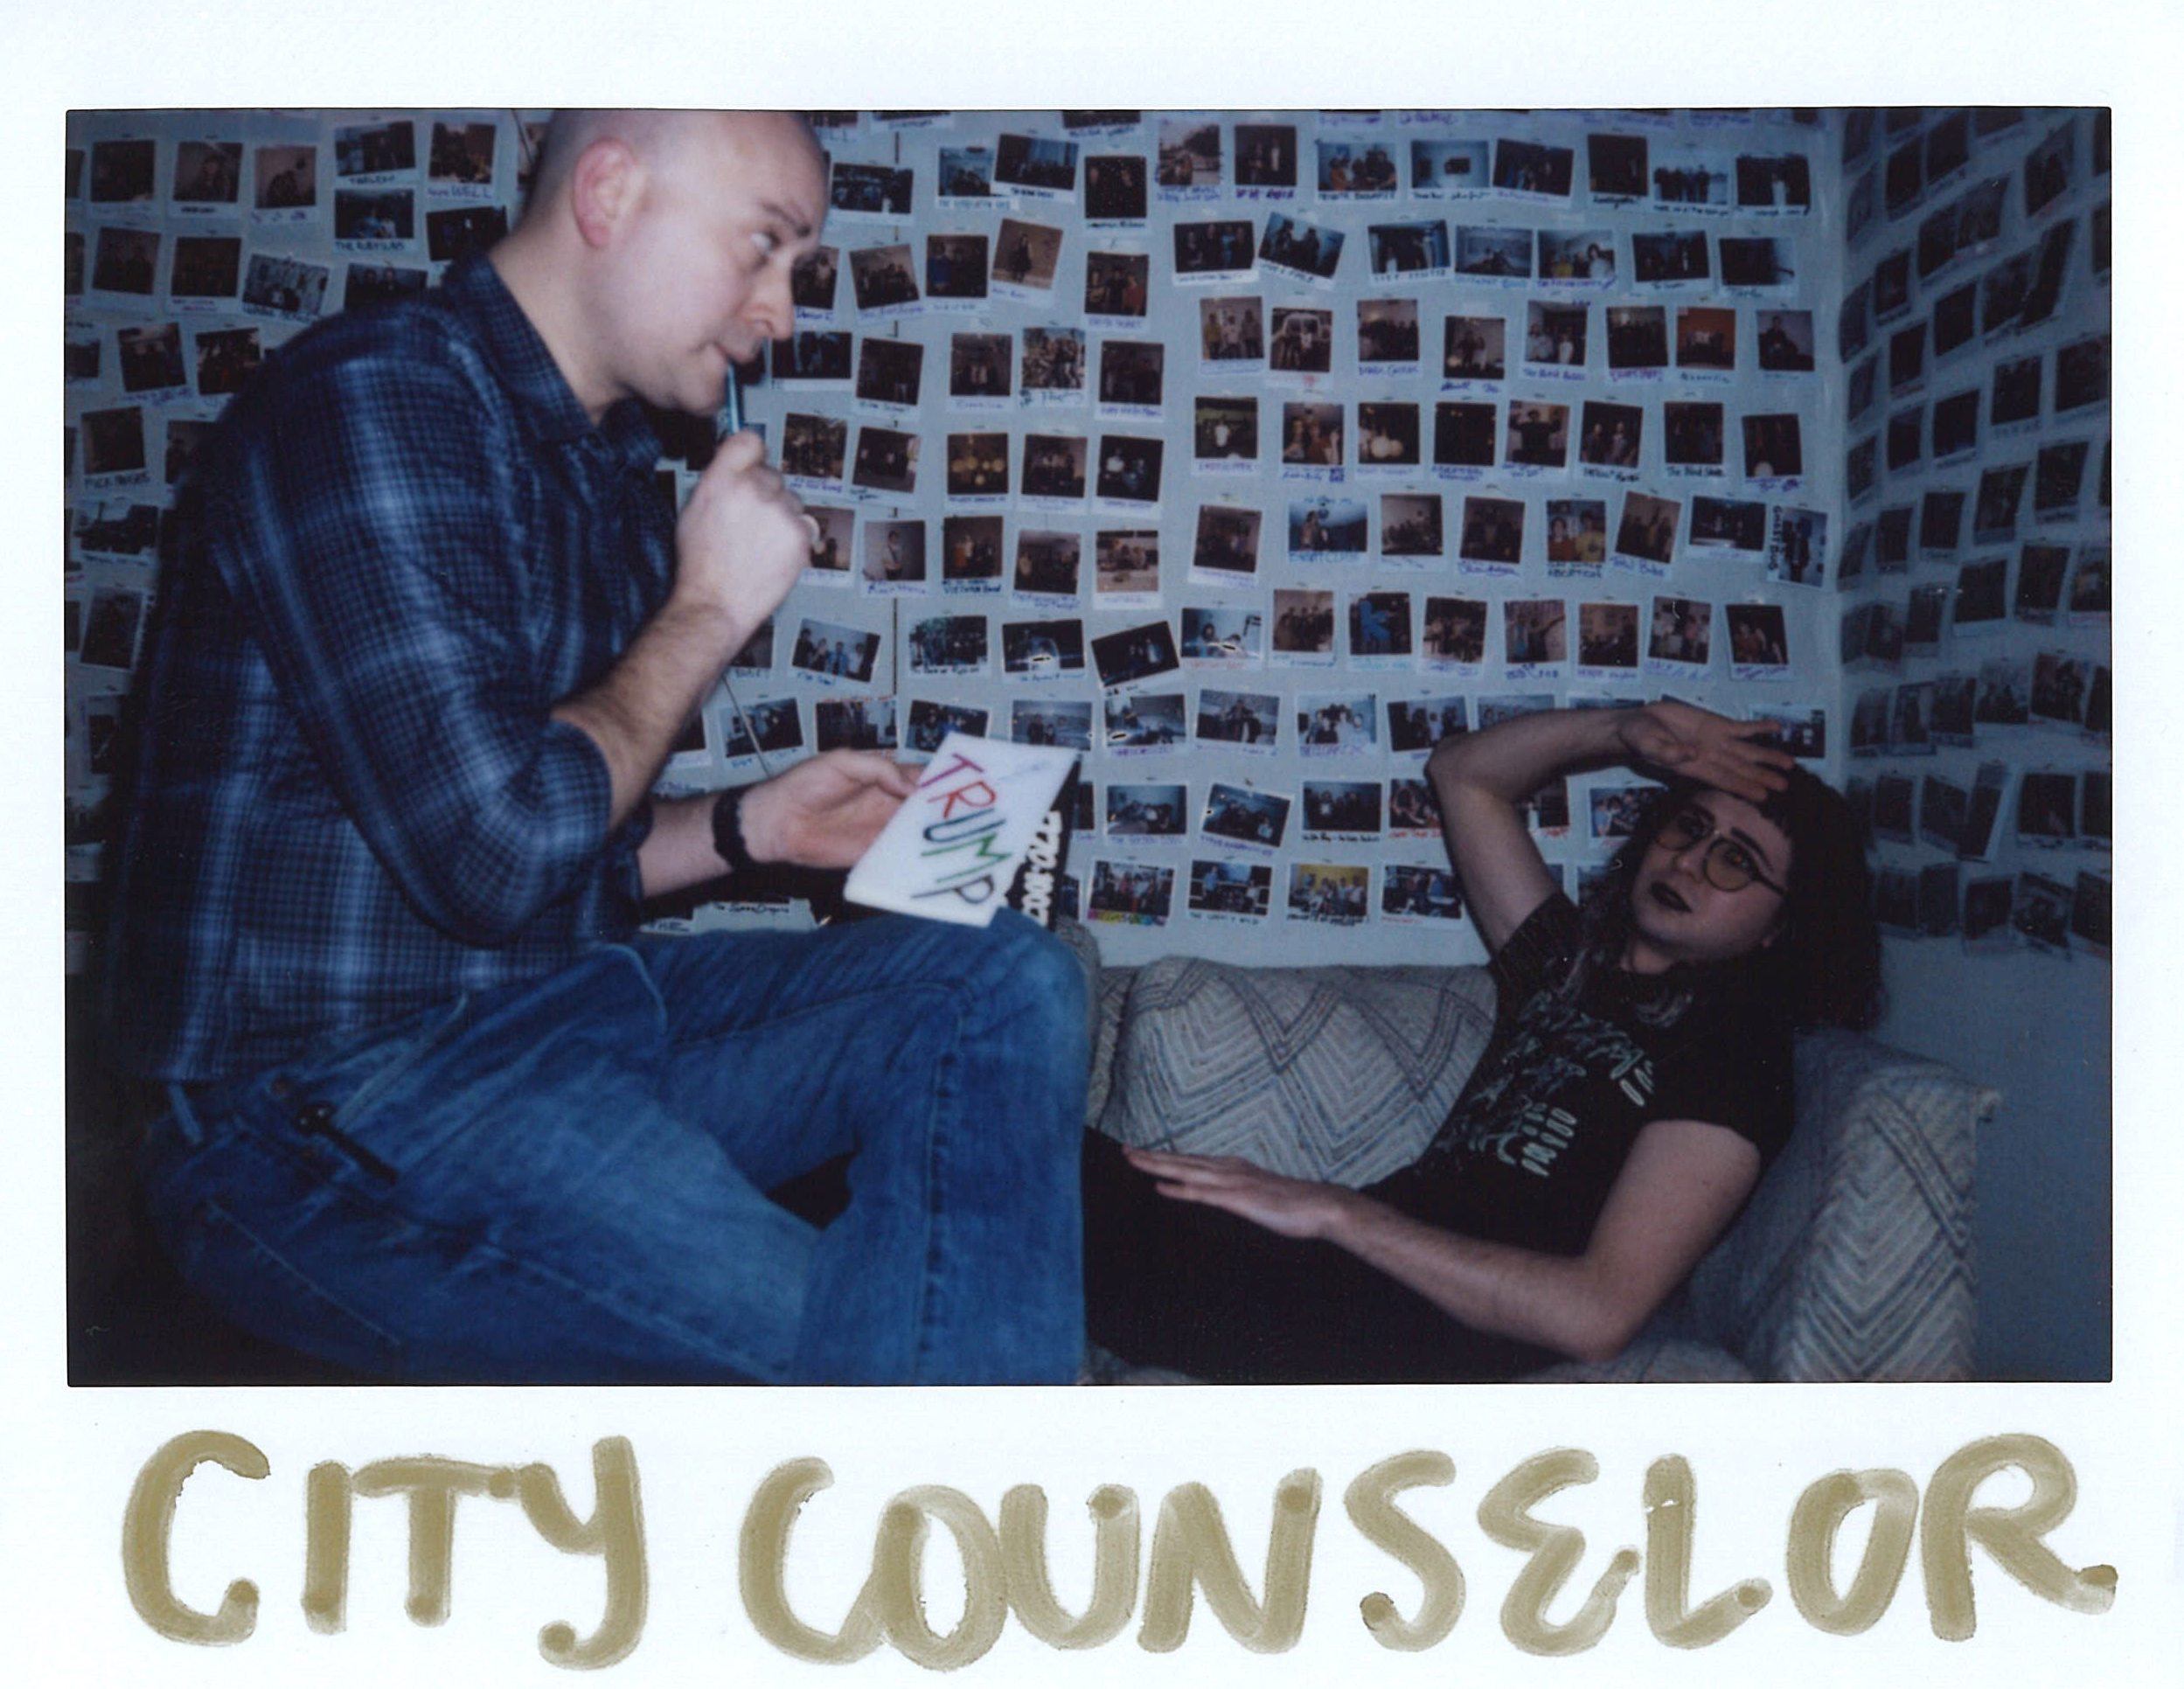 City Counselor